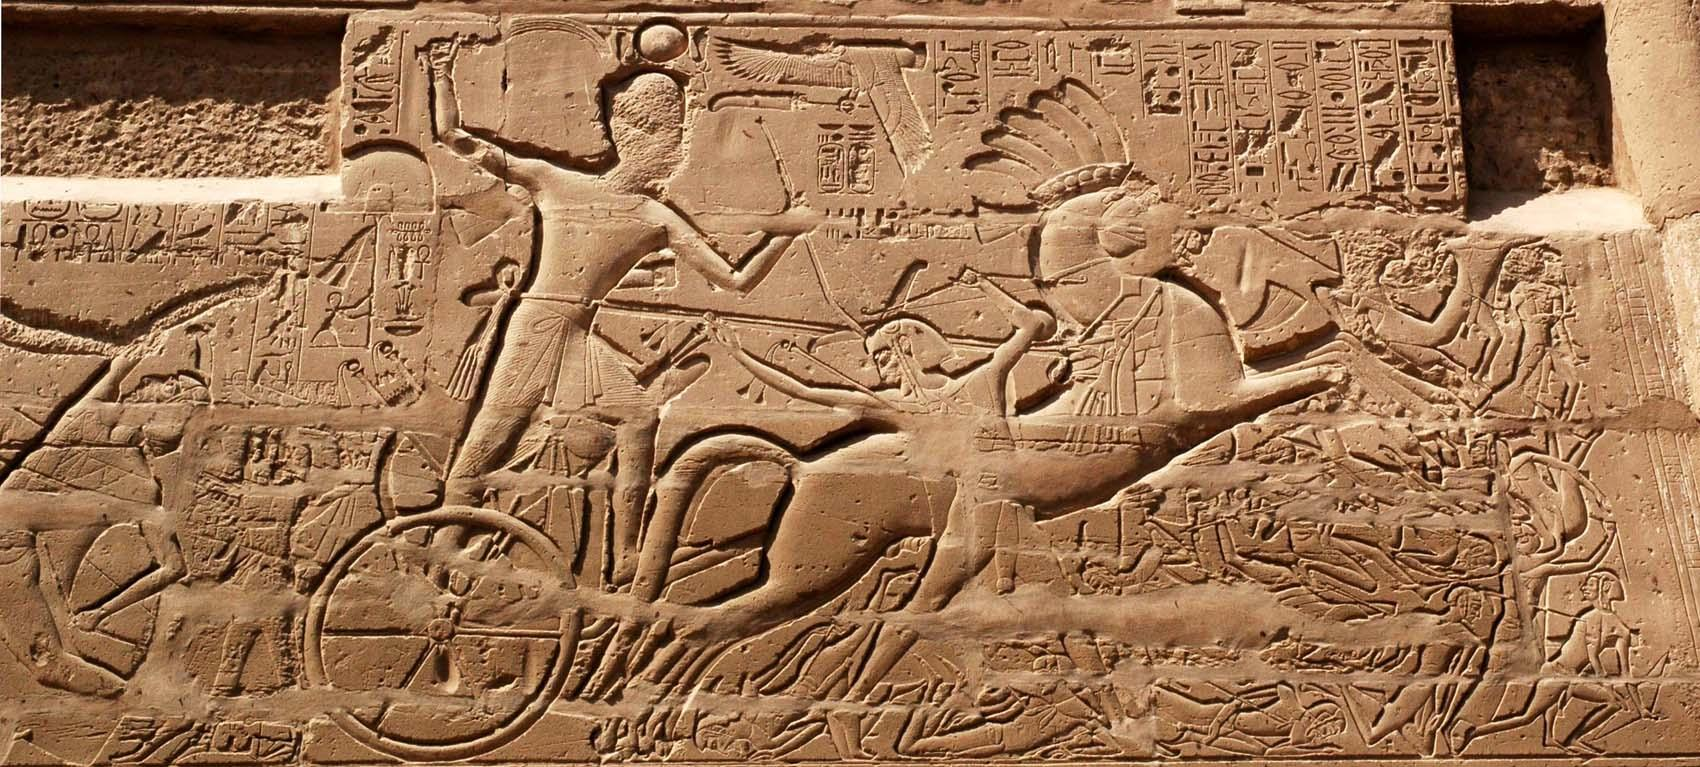 Resultado de imagen de egyptian relief sculpture pharaohs at war